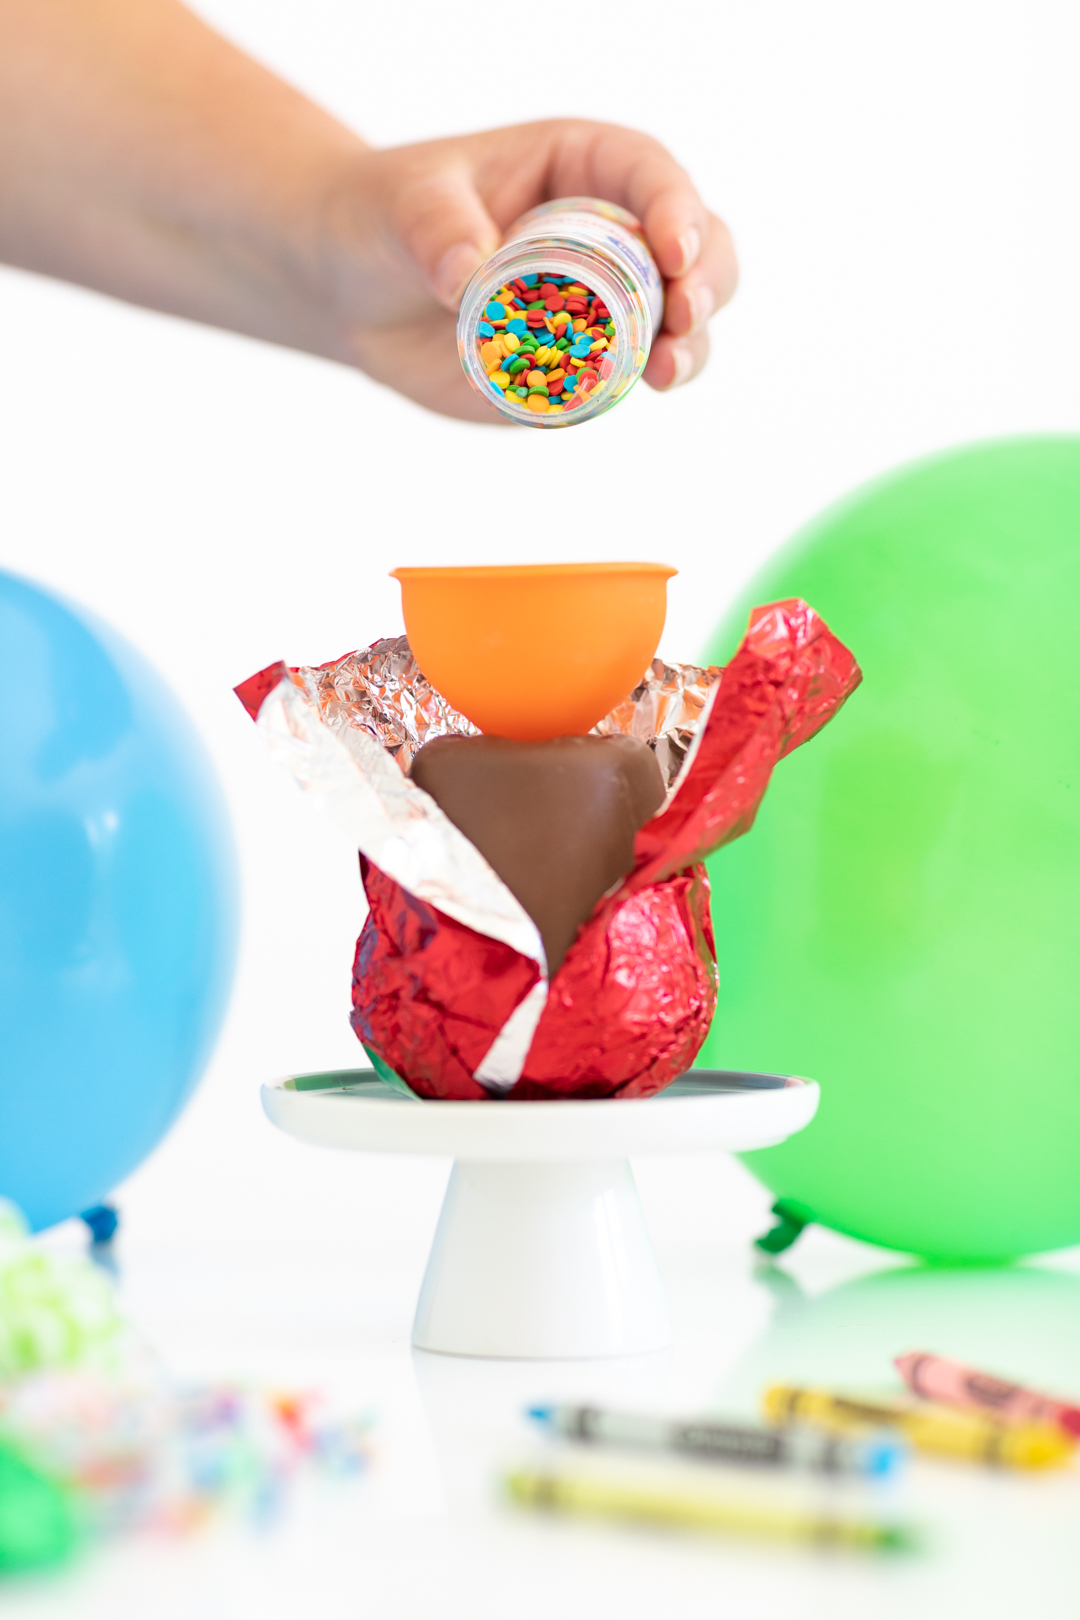 woman pouring sprinkles into a food funnel to get sprinkles into a hollow chocolate apple